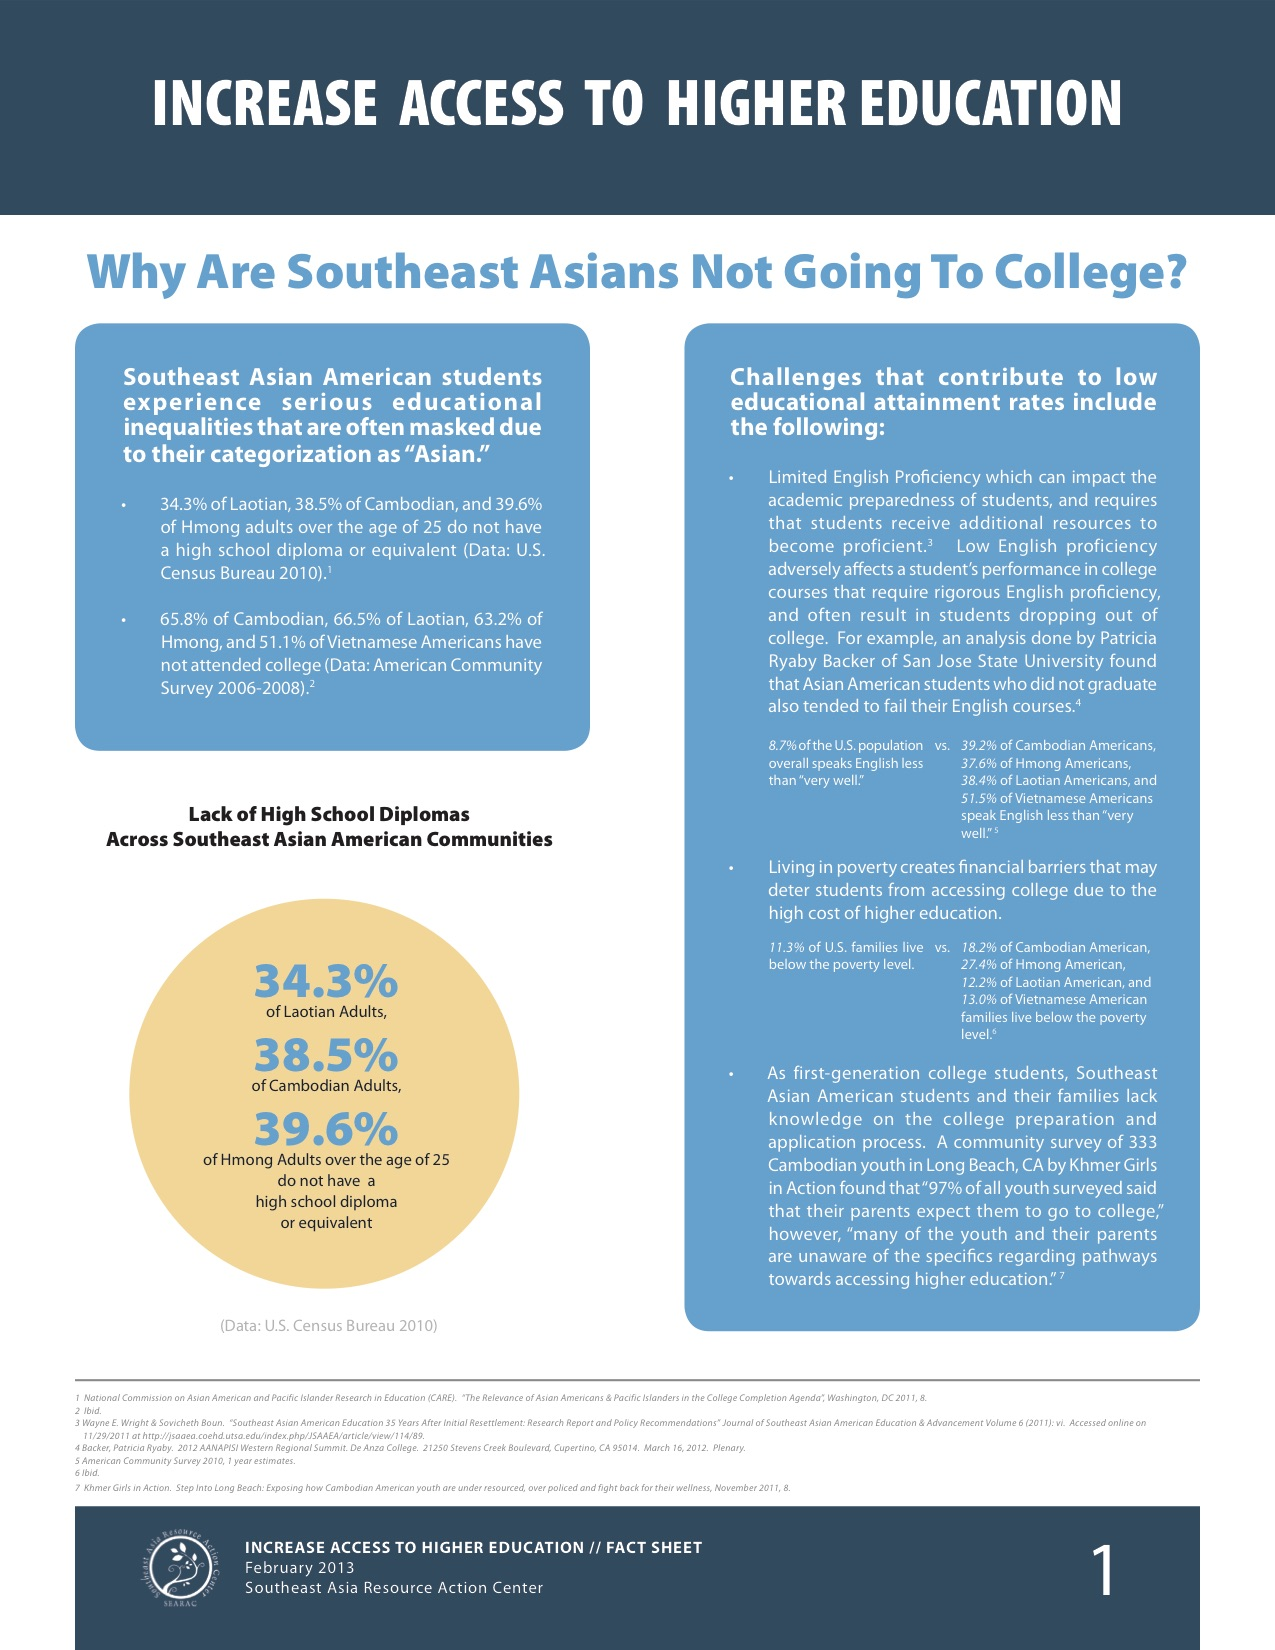 SEARAC English Language Learners & Southeast Asian American